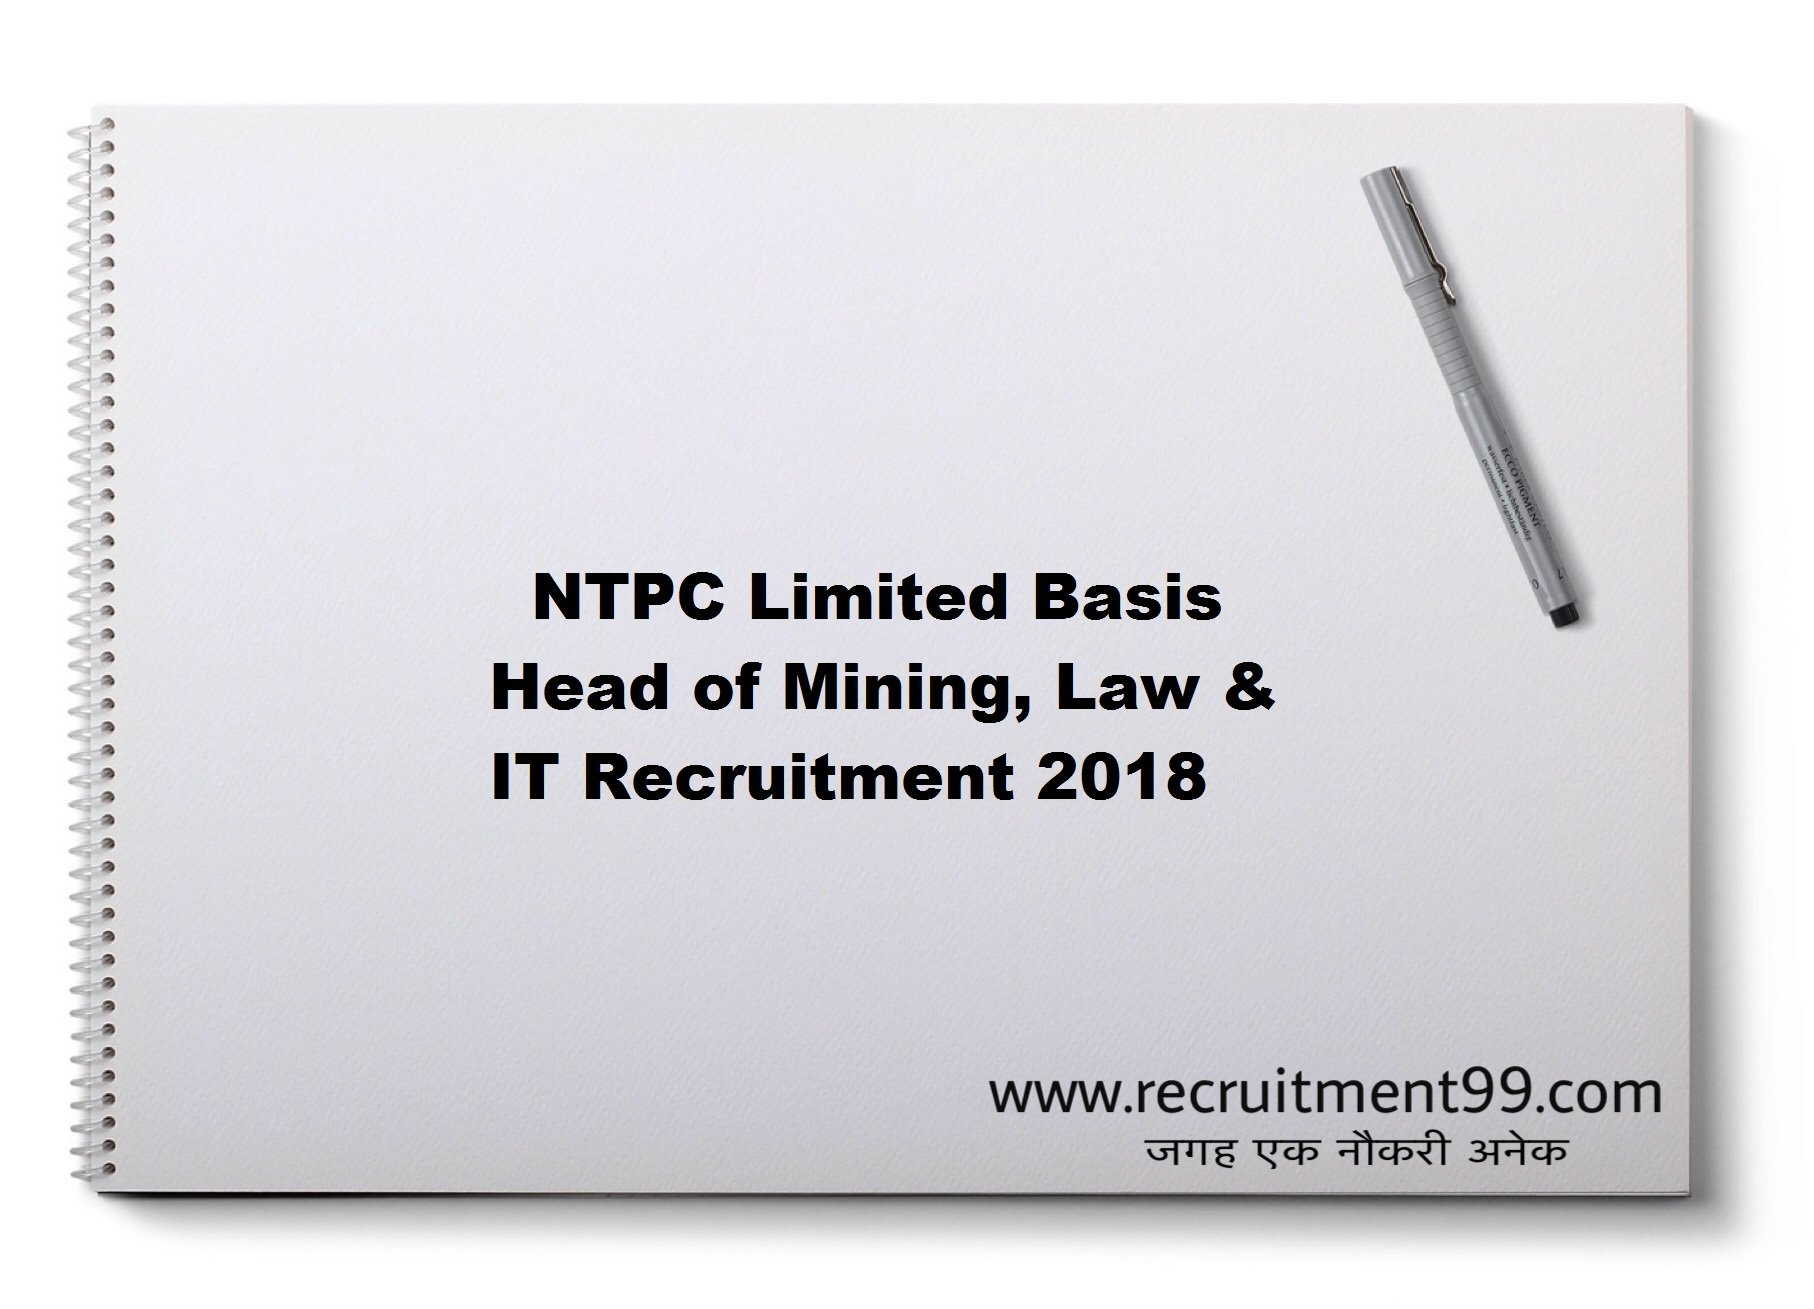 NTPC Limited Basis Head of Mining, Law & IT Recruitment Admit Card Result 2018